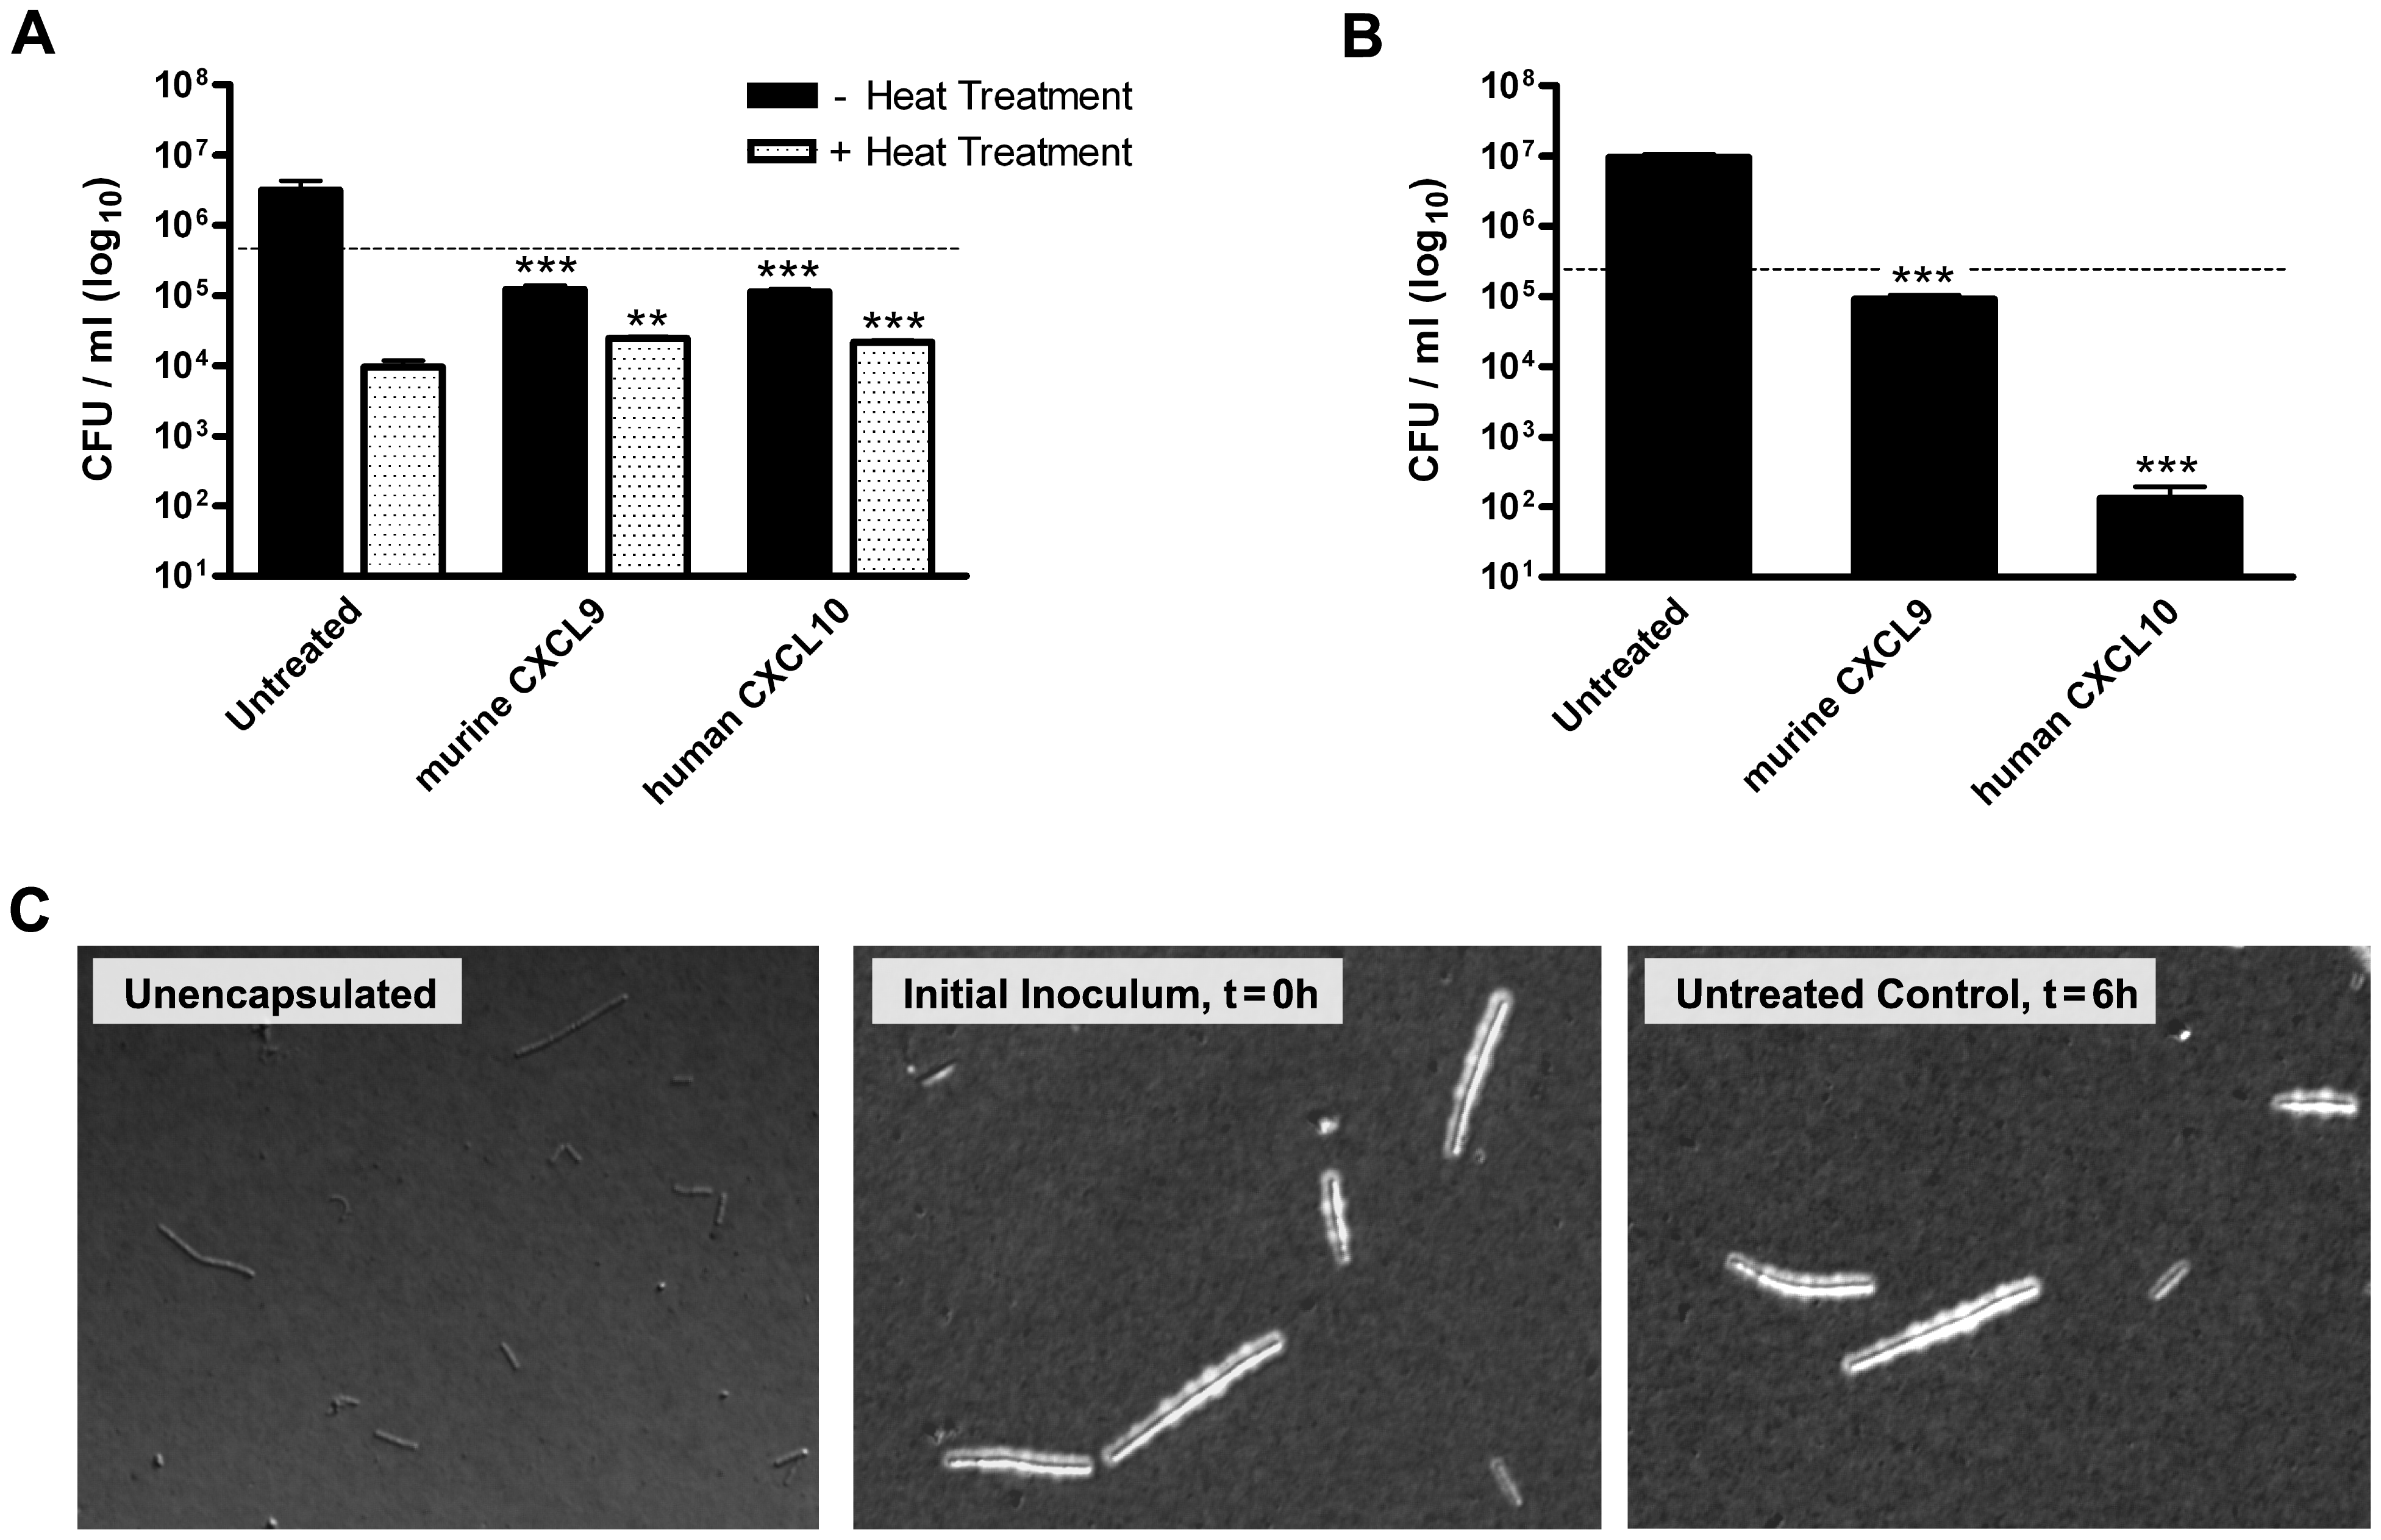 Chemokine-mediated antimicrobial activity against <i>B. anthracis</i> Ames strain spores and encapsulated bacilli.